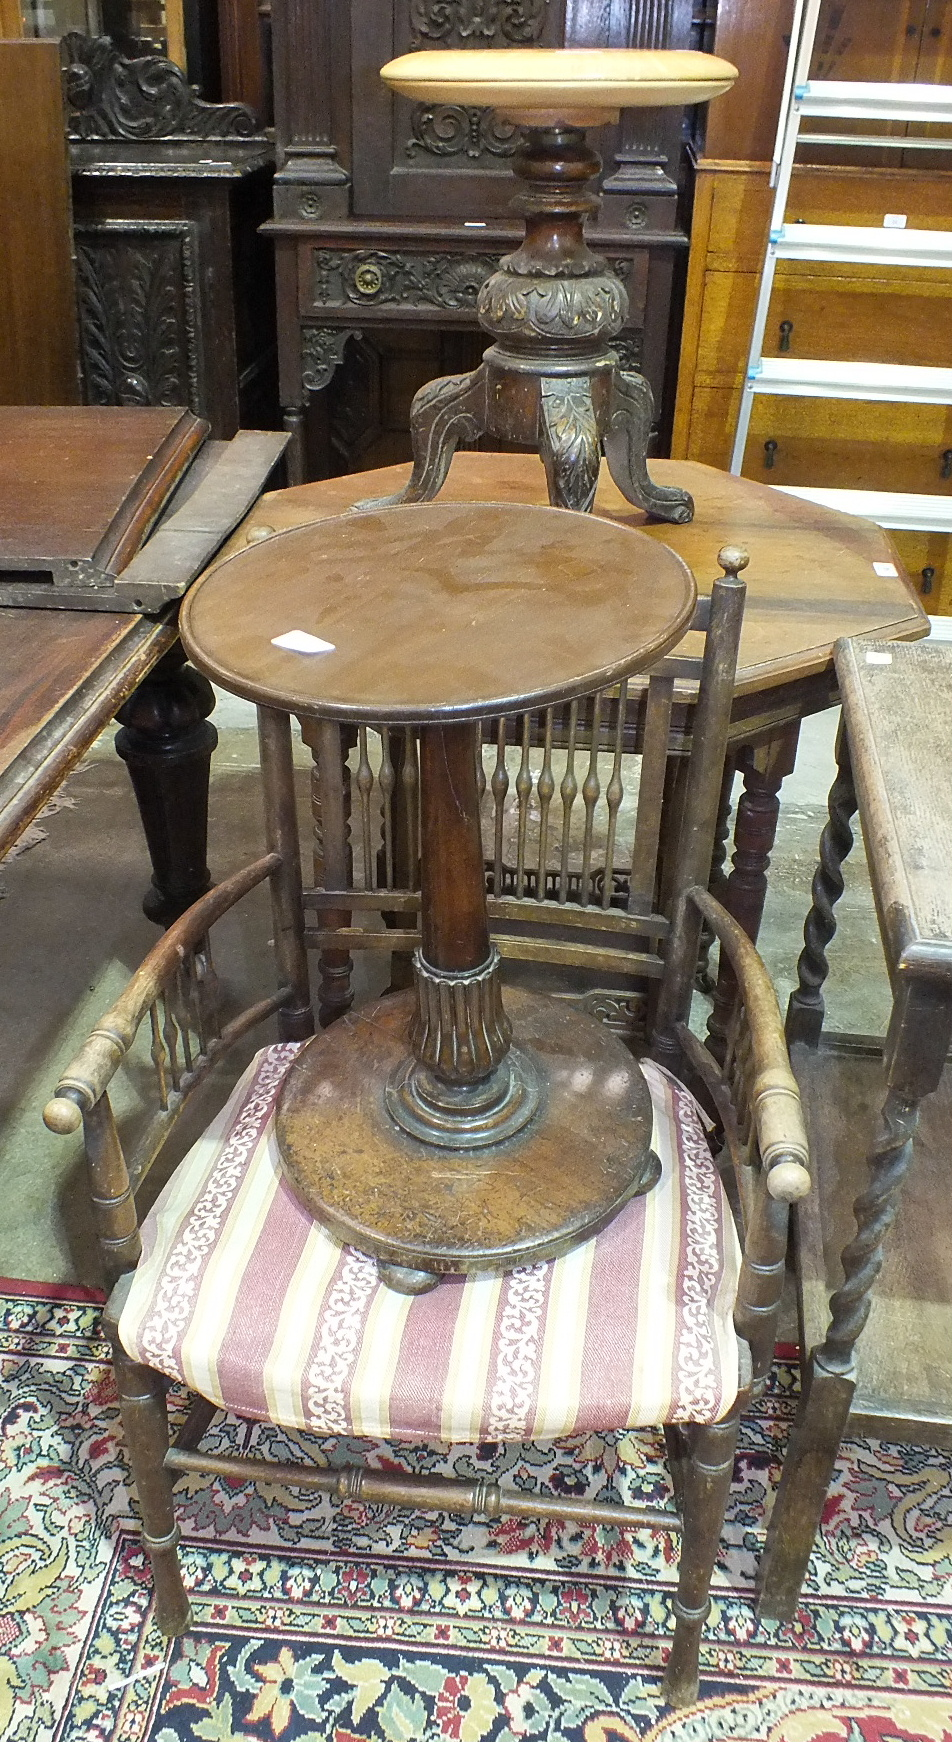 Lot 14 - An Edwardian walnut octagonal occasional table, a wooden armchair and other items.